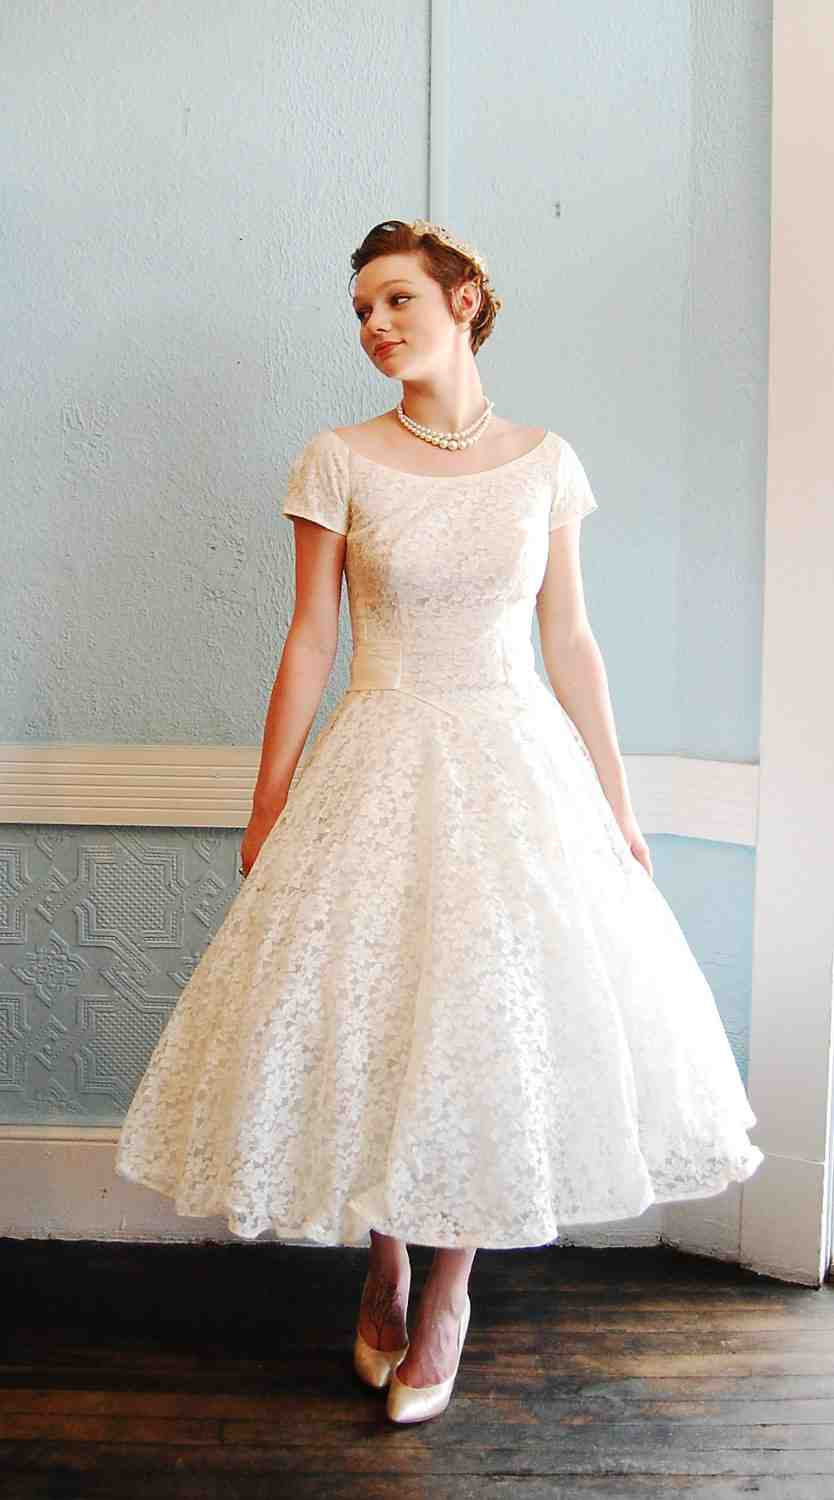 Tea Length Wedding Dresses Choose For Casual Afternoon. Cheap Wedding Dresses Derbyshire. Strapless Wedding Dress Fails. Casual Wedding Dresses Beach Wedding. Boho Wedding Dresses Utah. Halter Style Wedding Dresses 2014. Wedding Color Dress Code. Bohemian Wedding Dresses In Dallas. Wedding Dresses Styles 2017